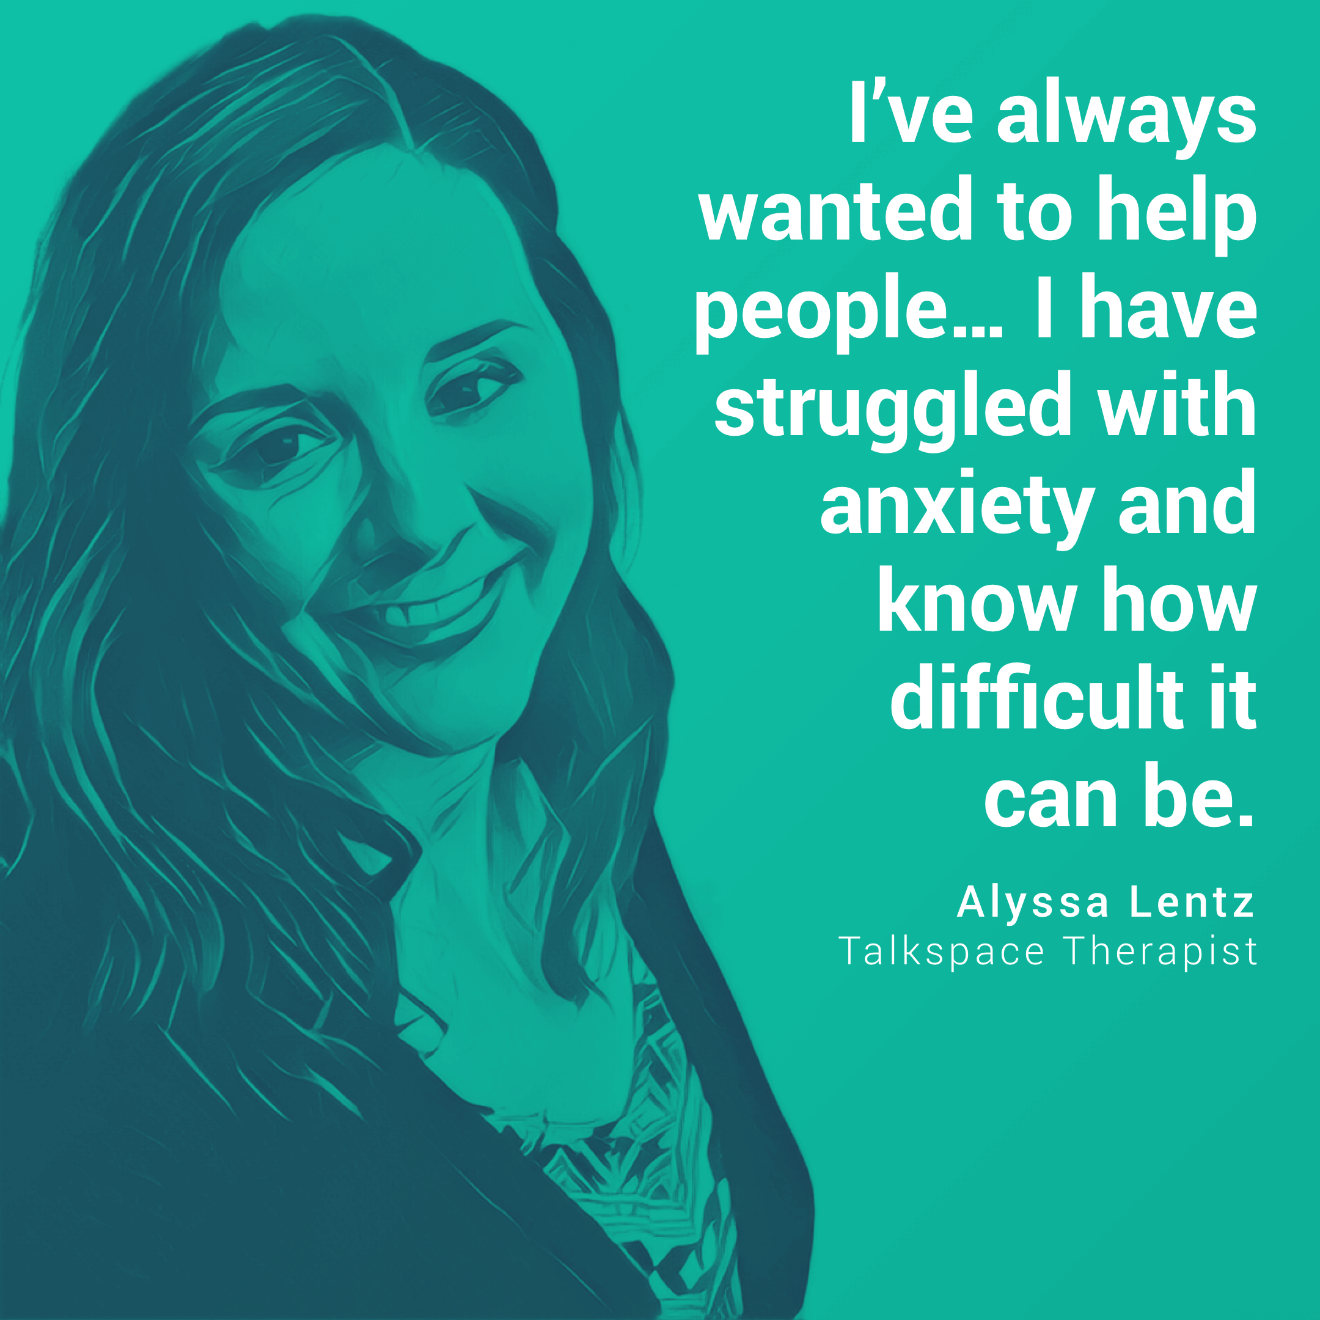 Alyssa Lentz Talkspace therapist illustrated head shot quote